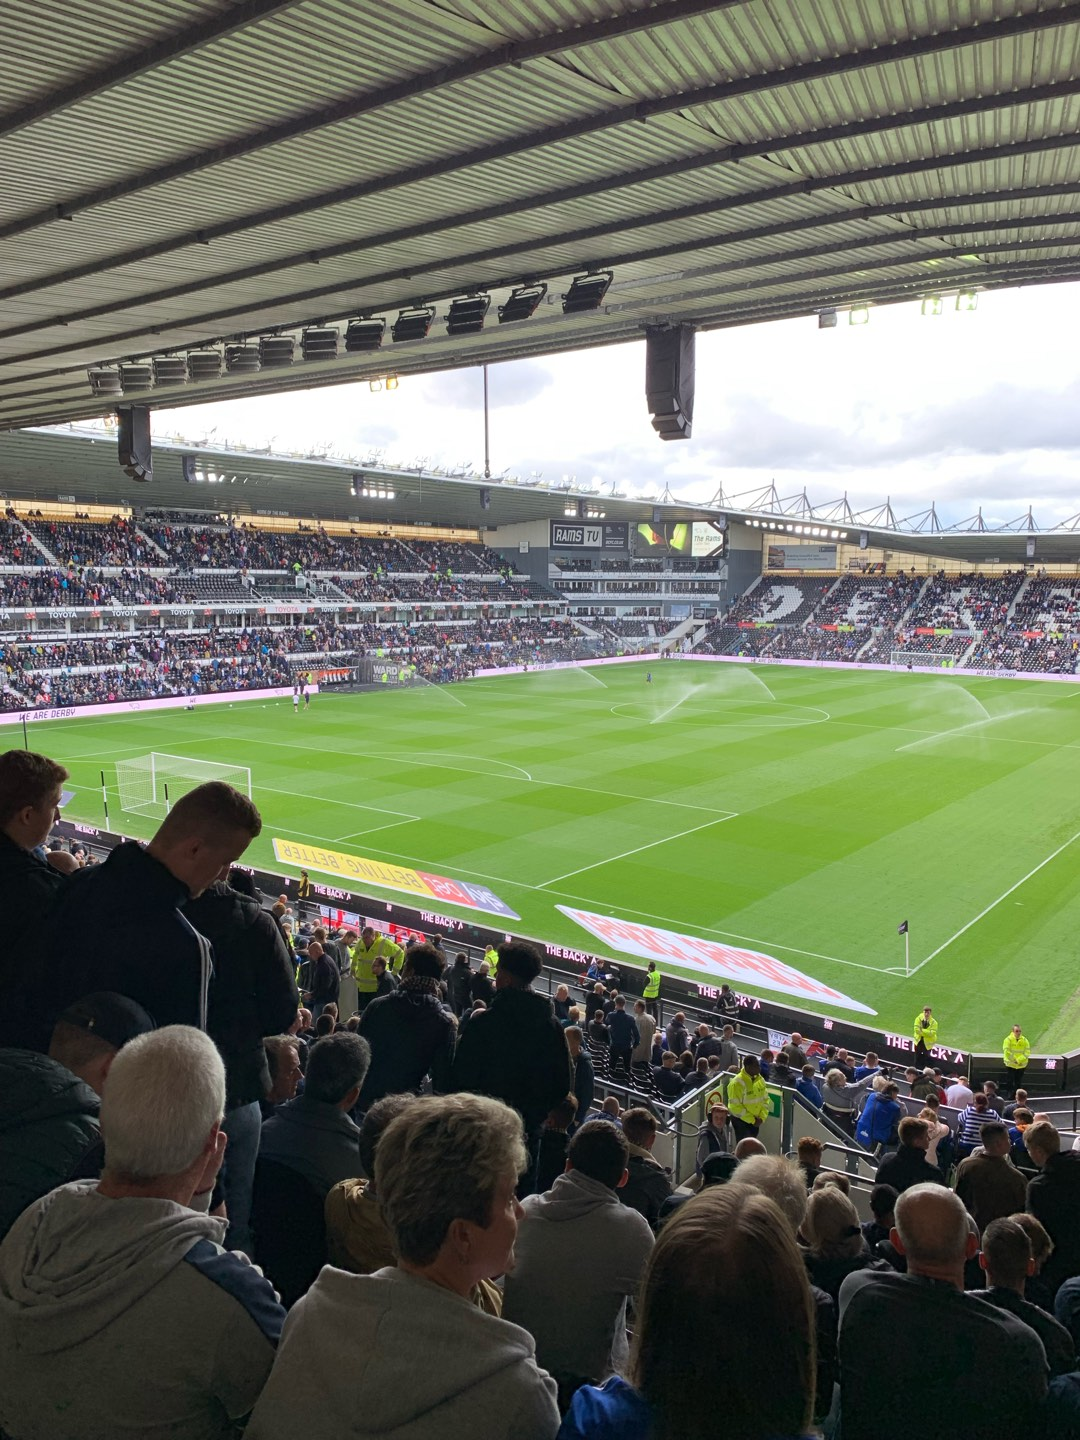 Pride Park Section Upper Block B Row S Seat 596